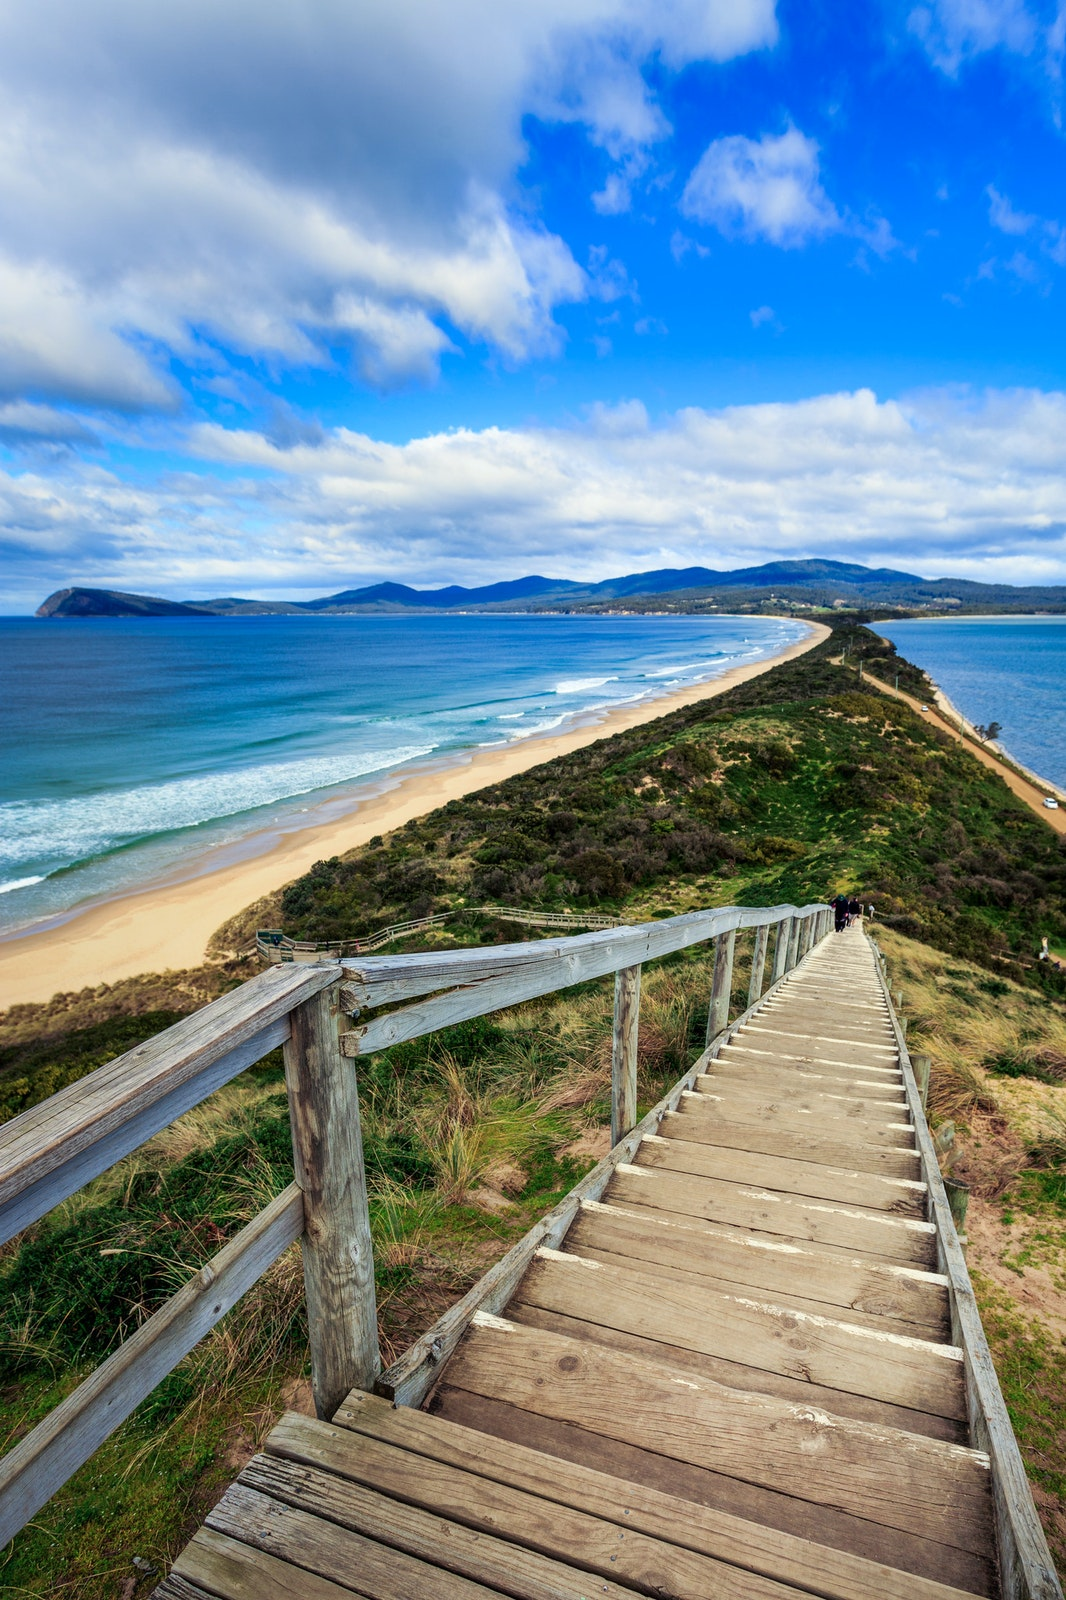 The Neck - The narrow landbridge known as The Neck that connects the north and south parts of Bruny Island, Tasmania